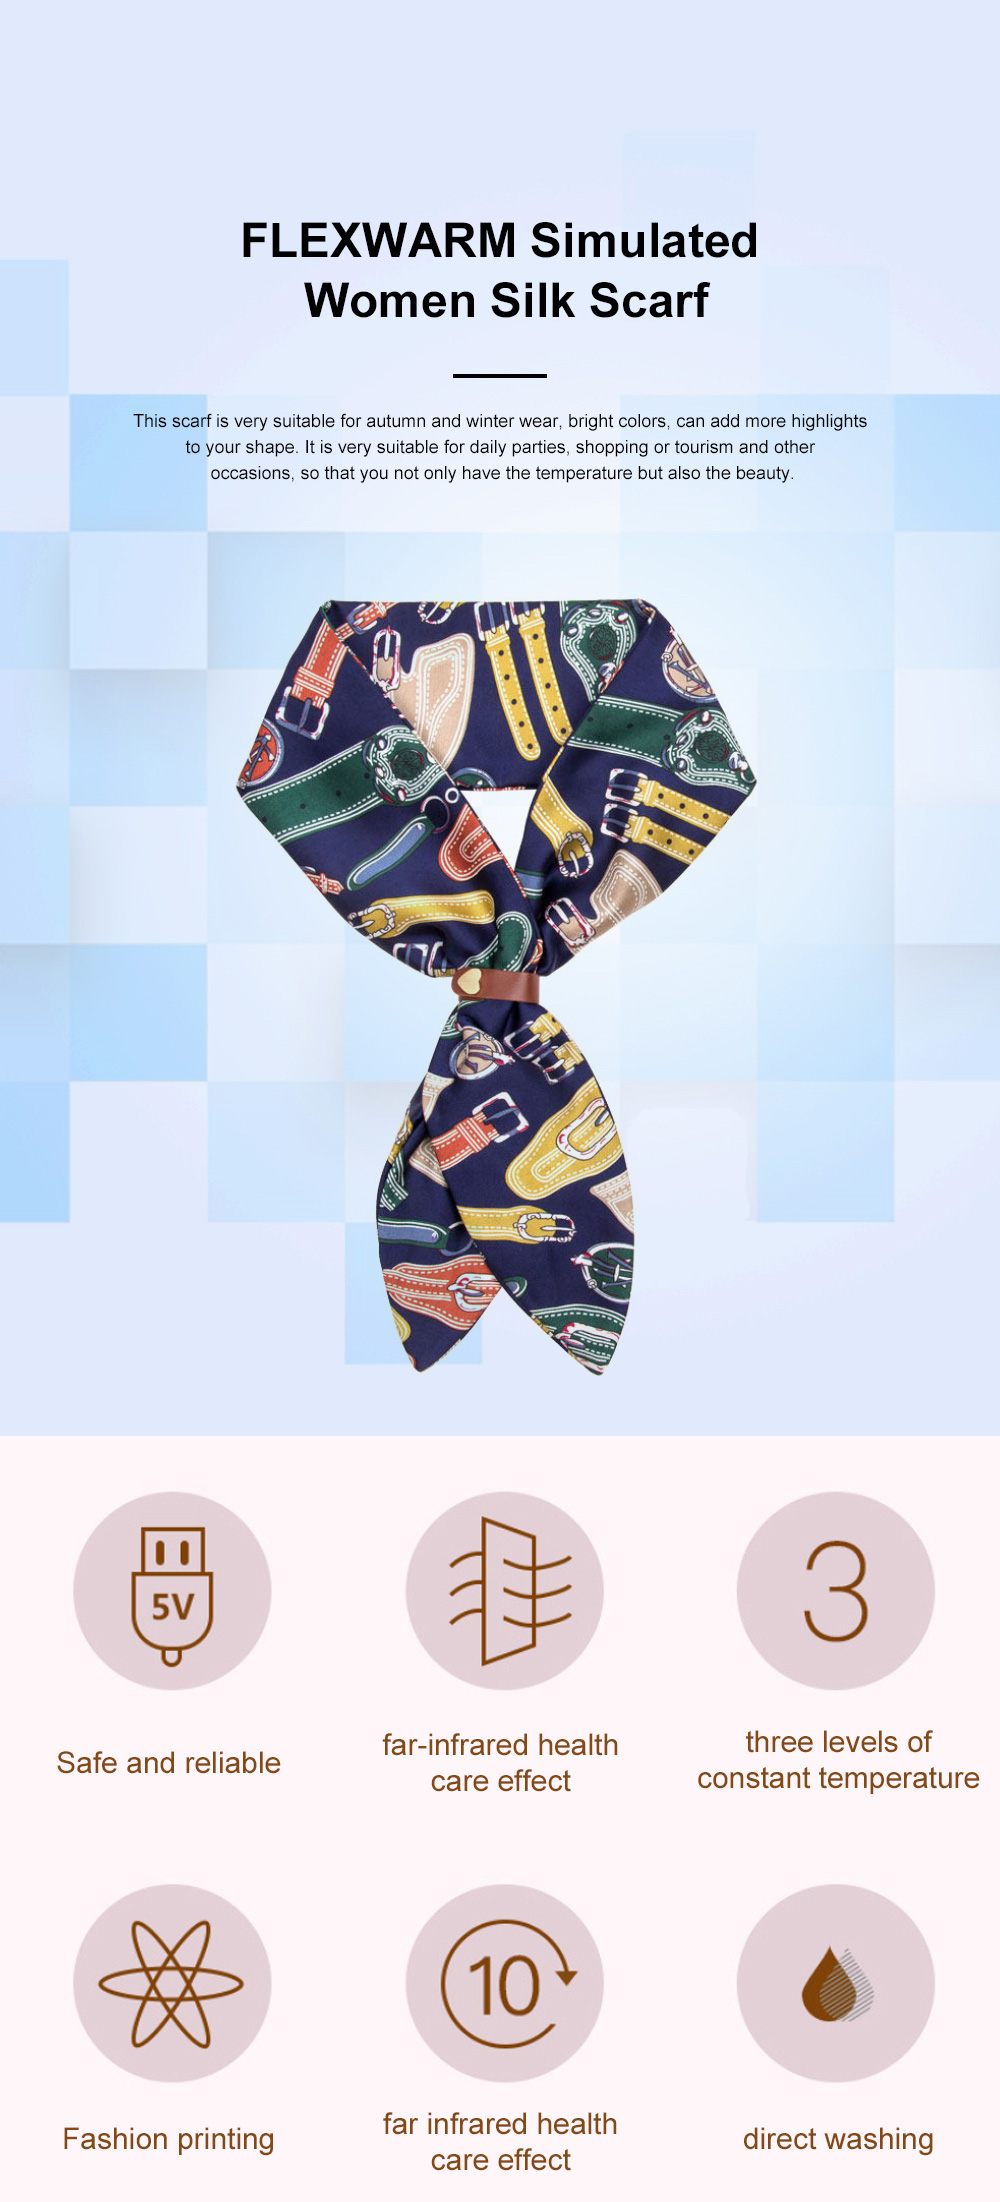 FLEXWARM Simulated Silk Intelligent Neck Protection Women's Silk Scarf Hot Short Style Versatile Scarf in Autumn and Winter 0